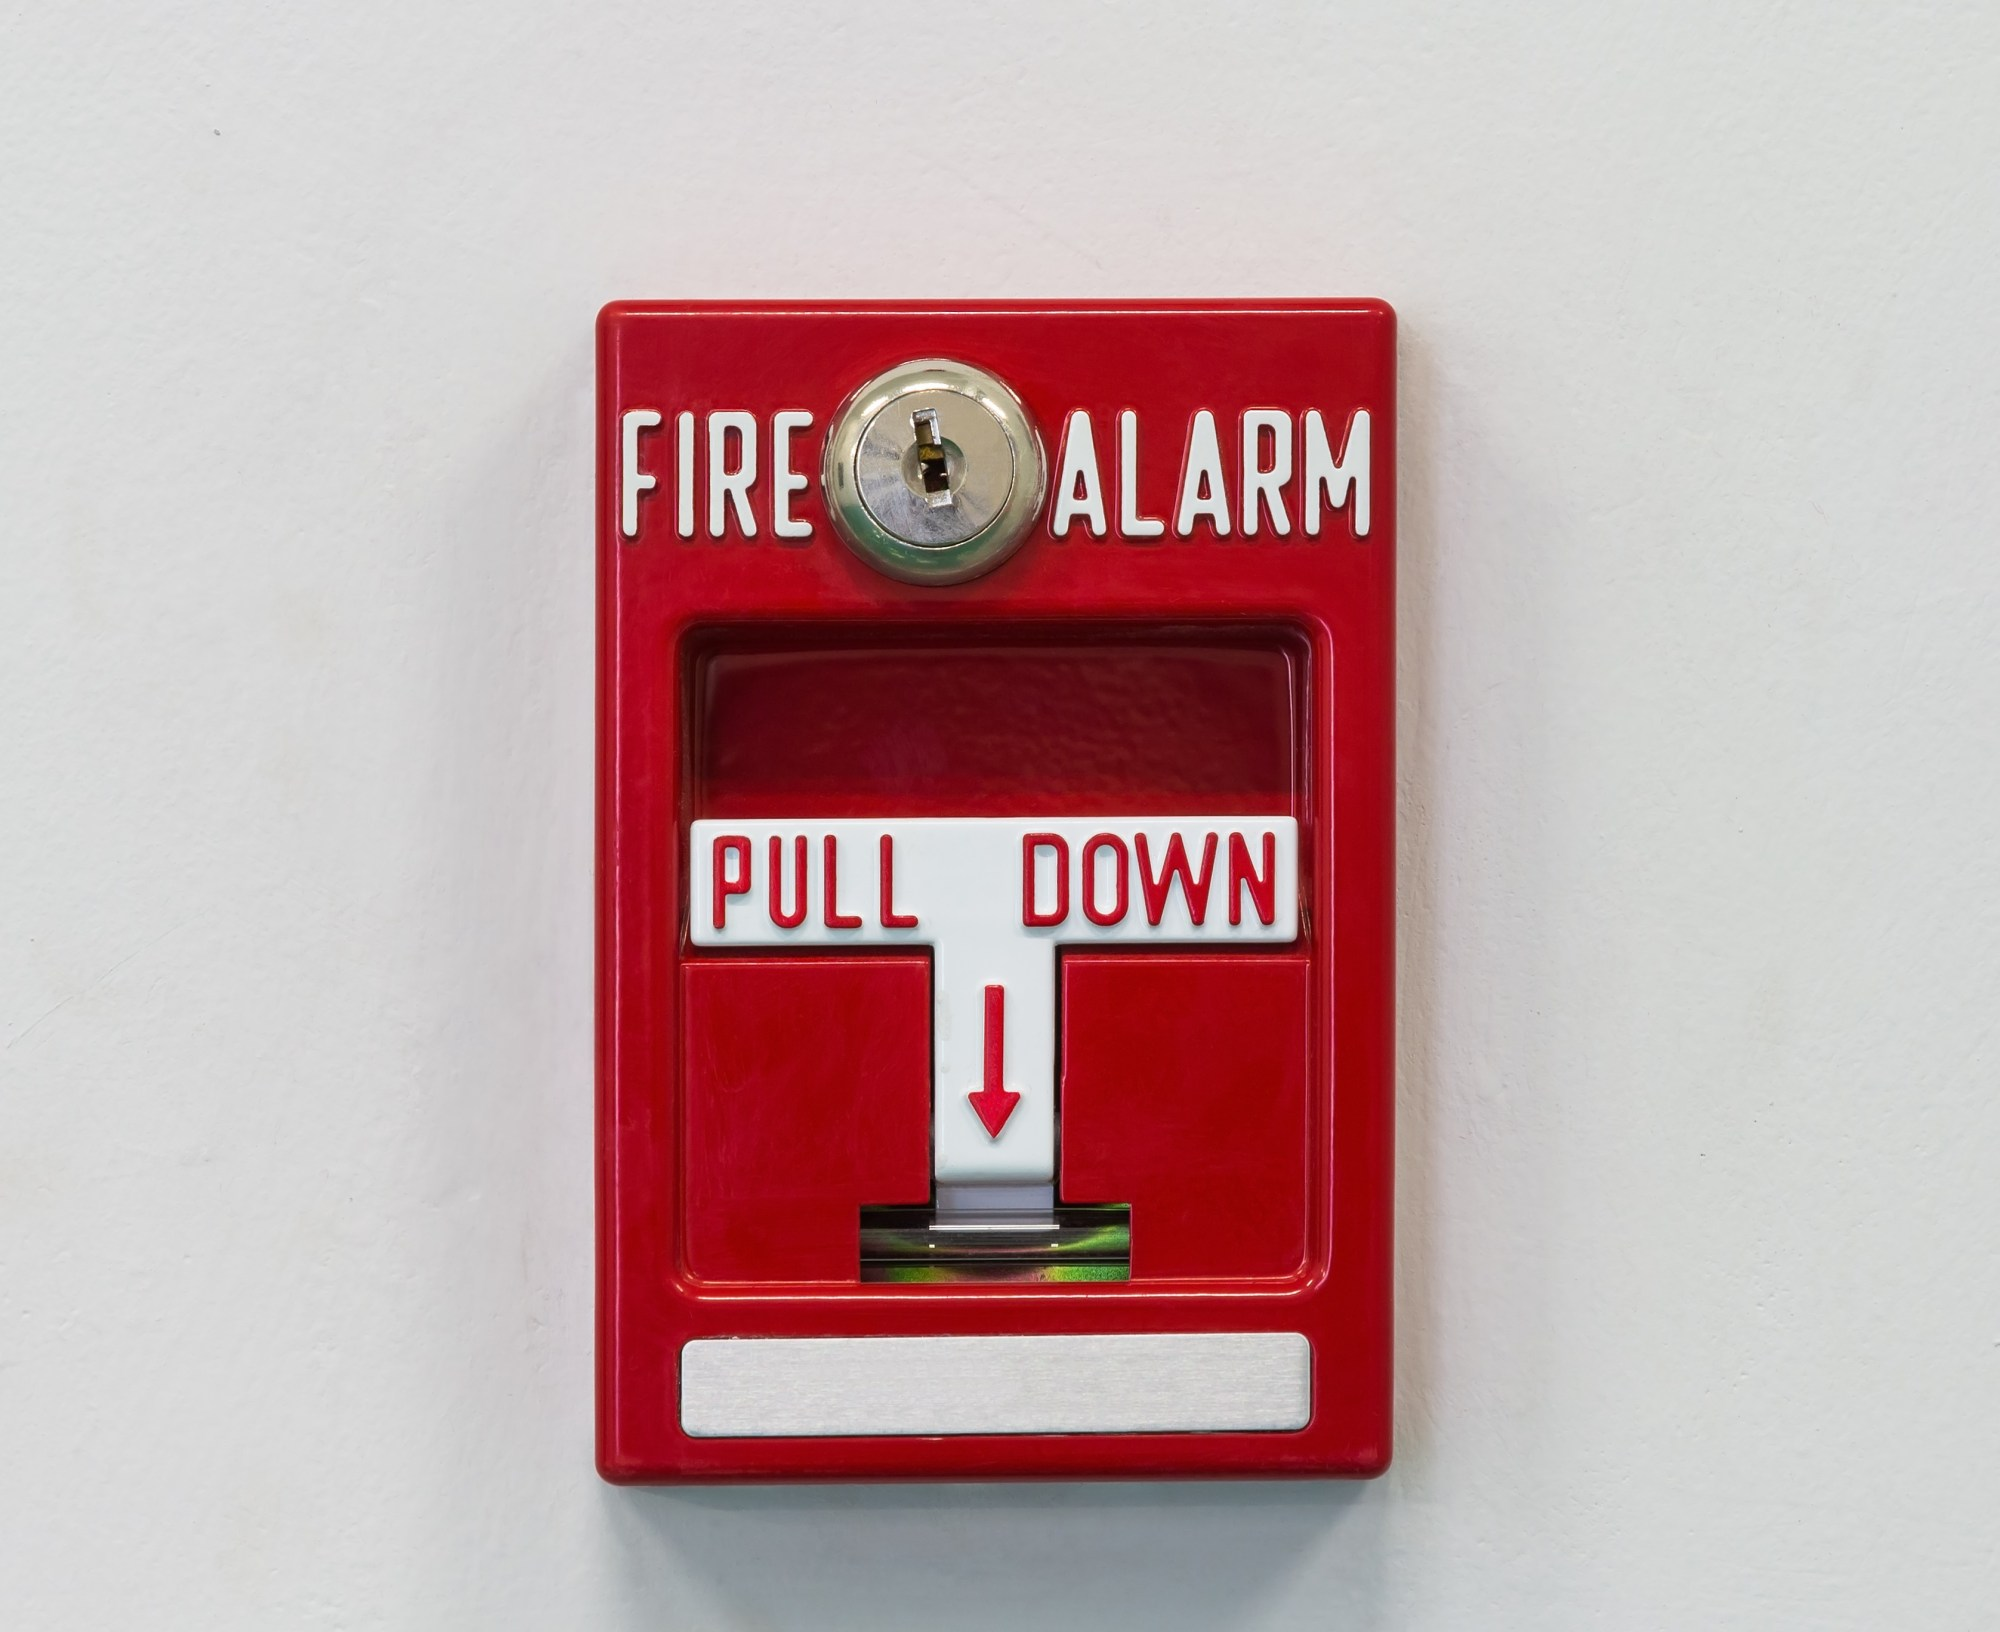 hight resolution of wall mounted fire alarm pull switch for activating fire fighting system